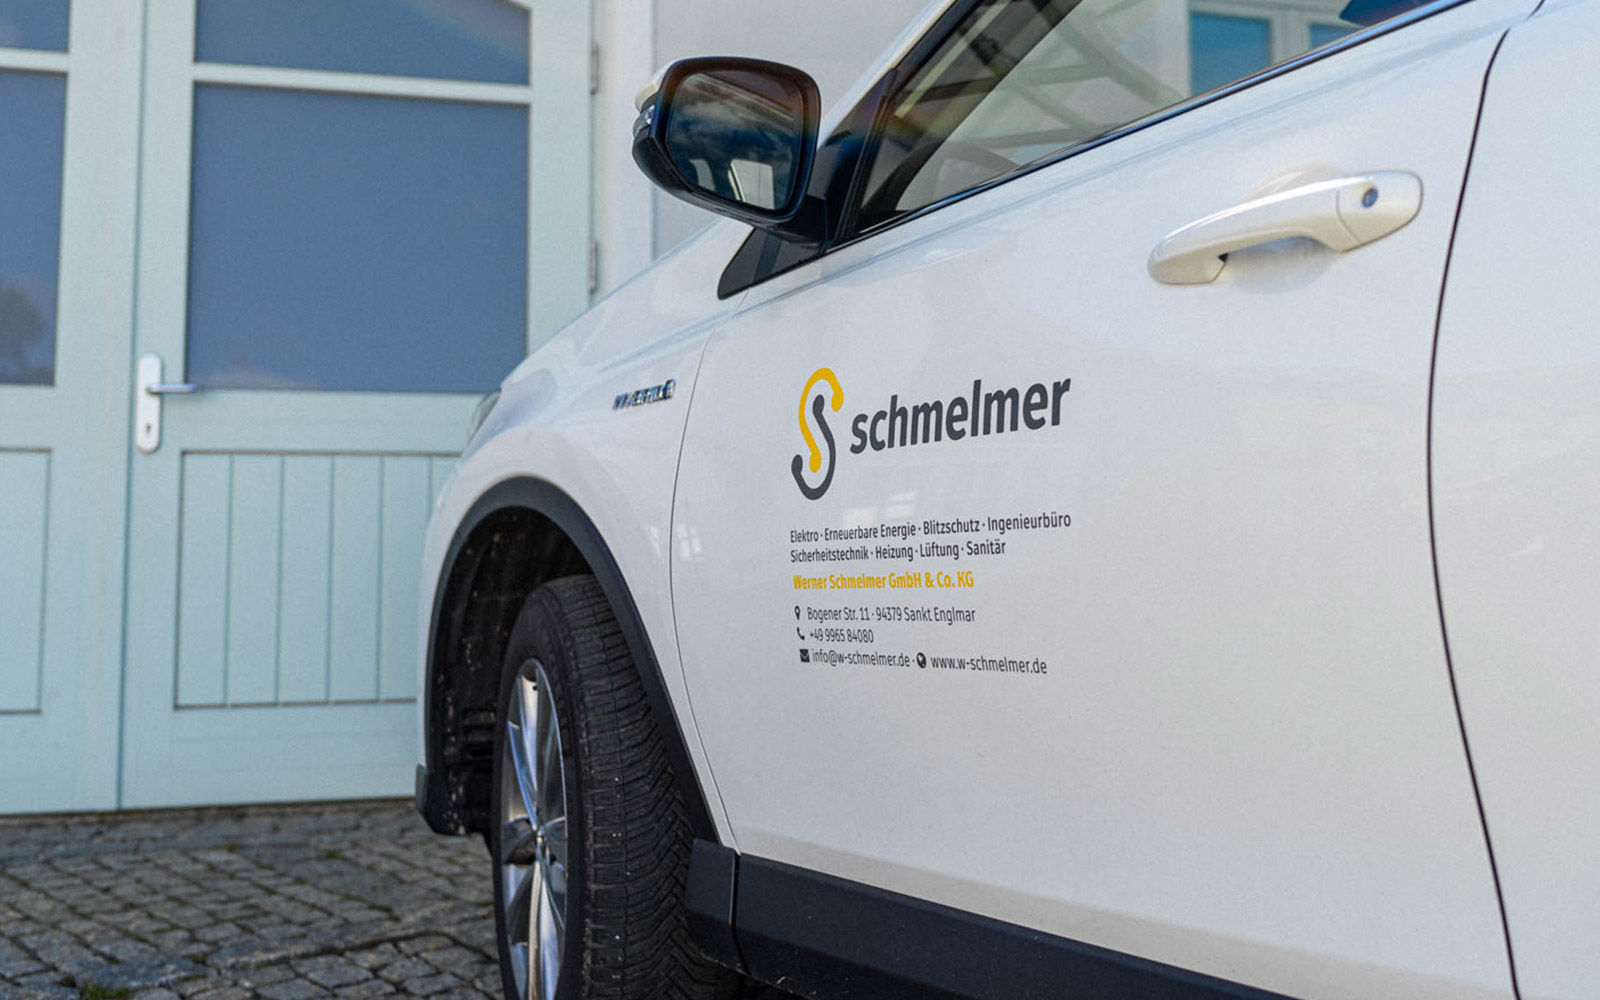 Werner Schmelmer GmbH & Co.KG – Car Wrapping